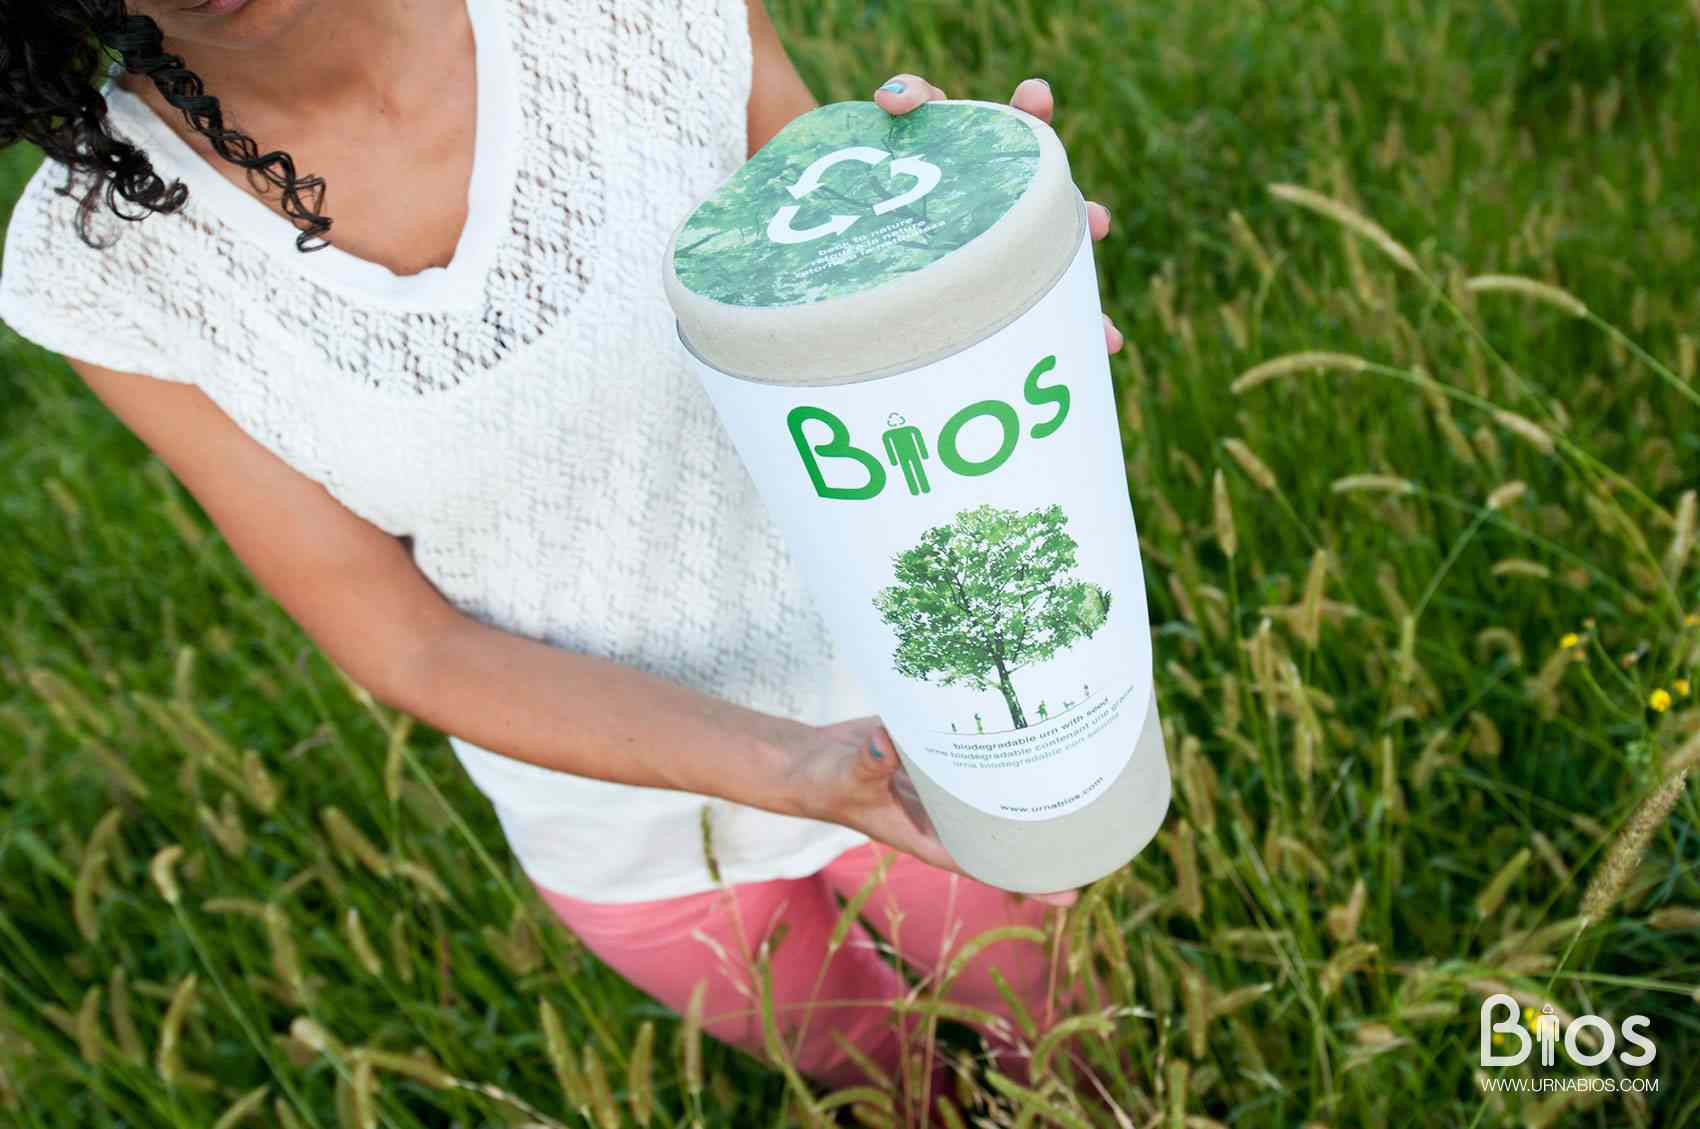 The Bios Urn is 100 percent biodegradable and holds the ashes of your loved one plus a seed to grow a tree.